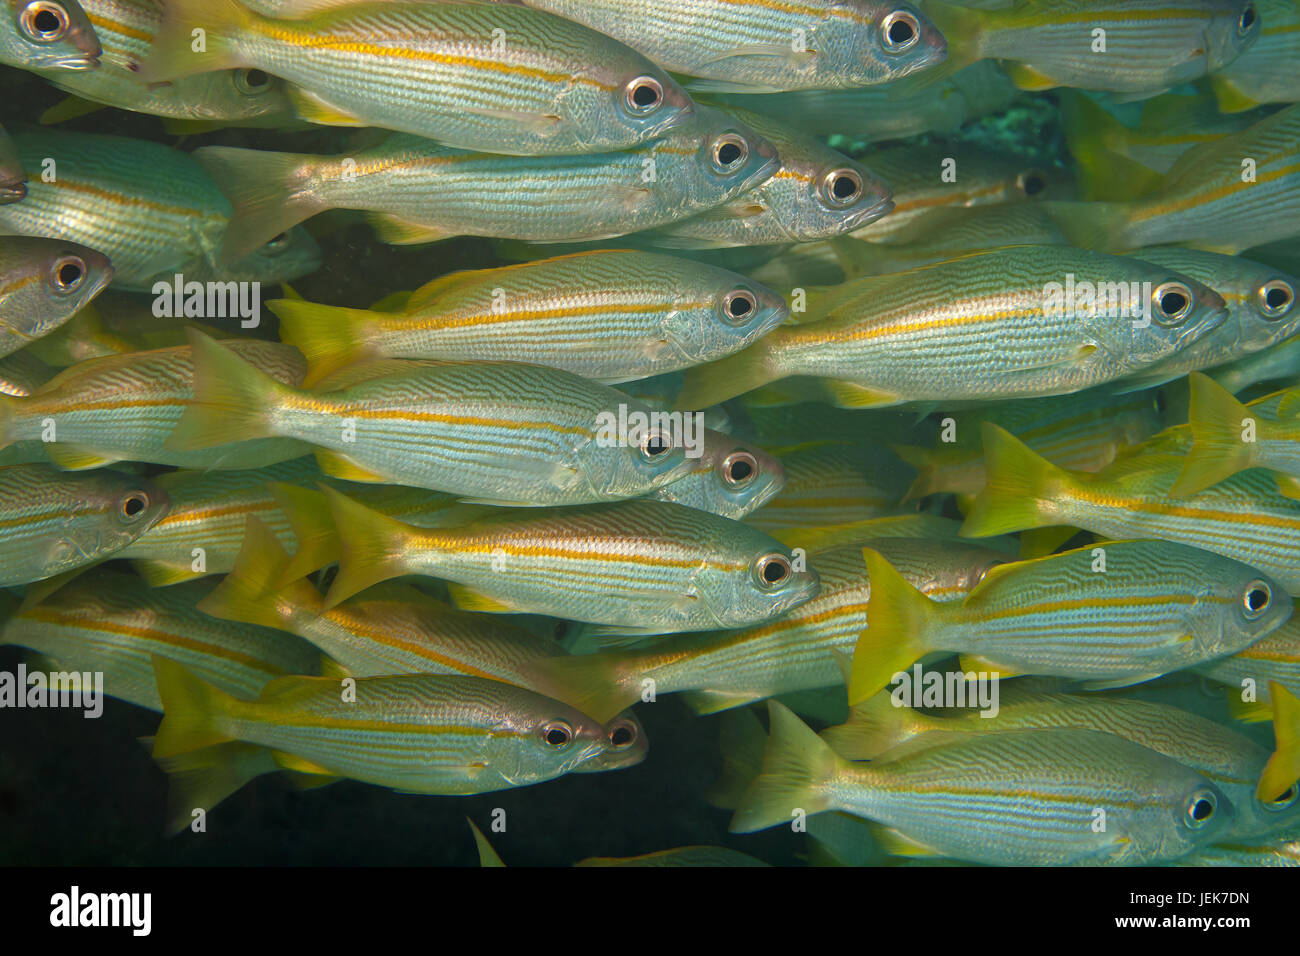 In the midst of thousands of fish - Stock Image